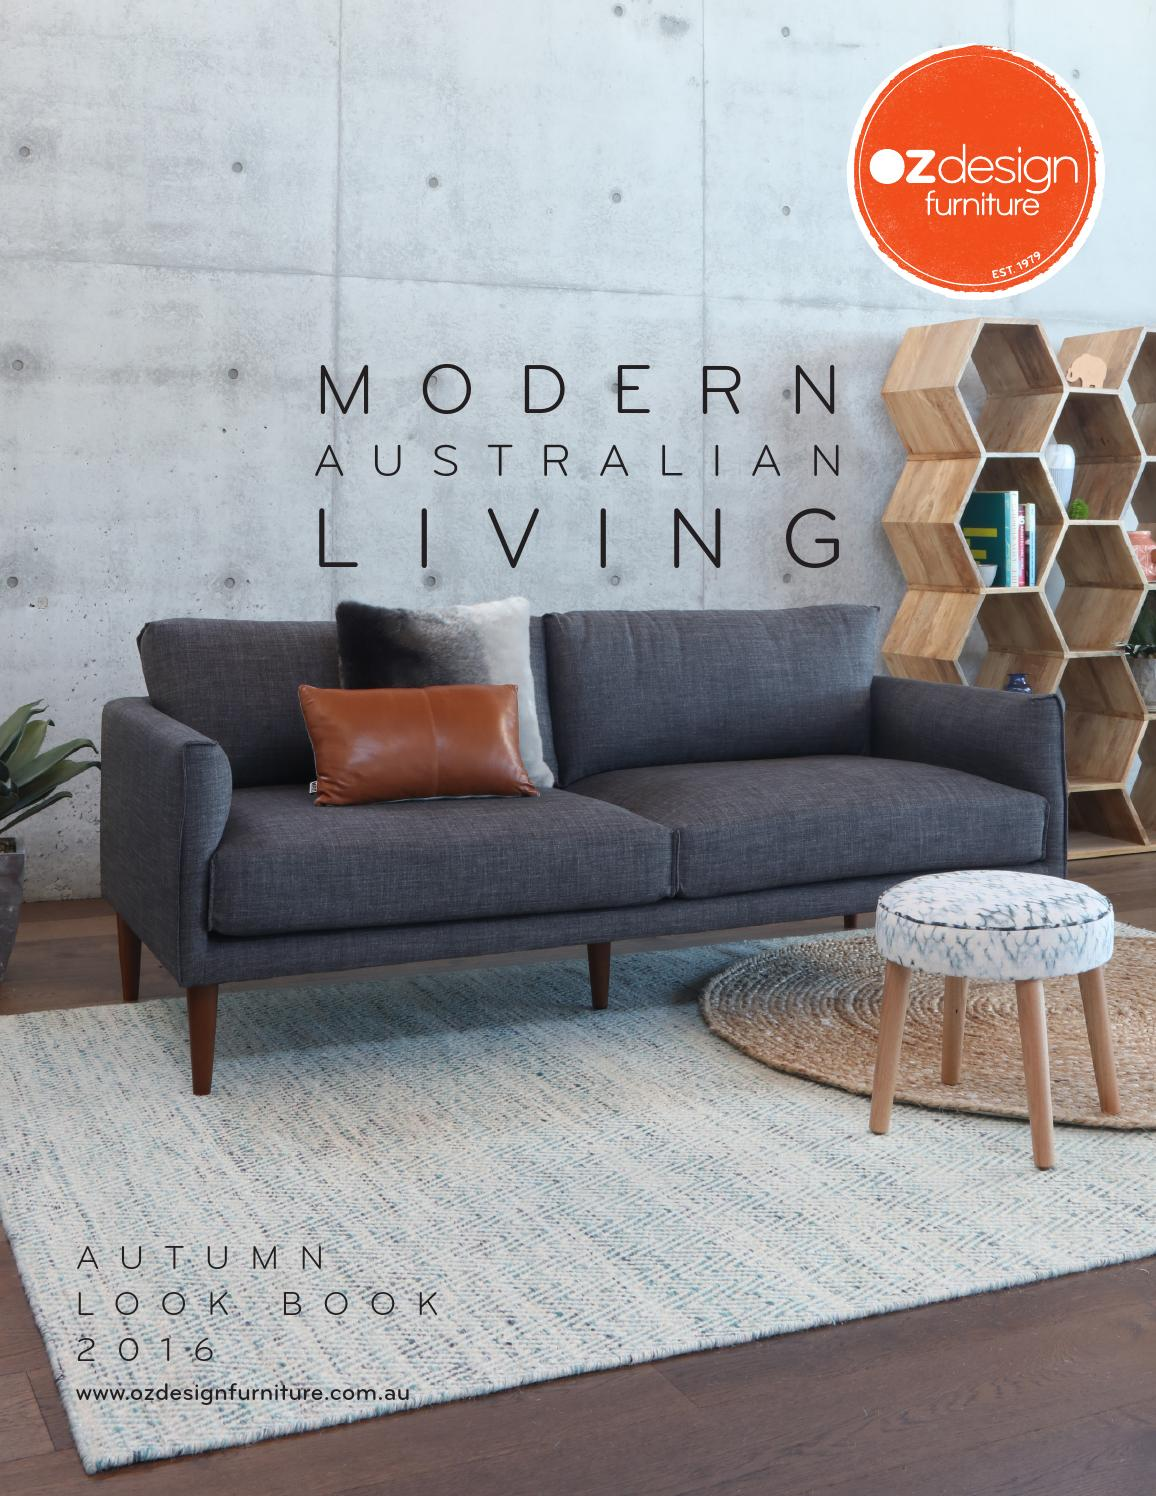 Oz Design Furniture offers from oz design furniture in the sydney nsw catalogue Modern Australian Living Oz Design Furniture Autumn Look Book By Oz Design Furniture Issuu